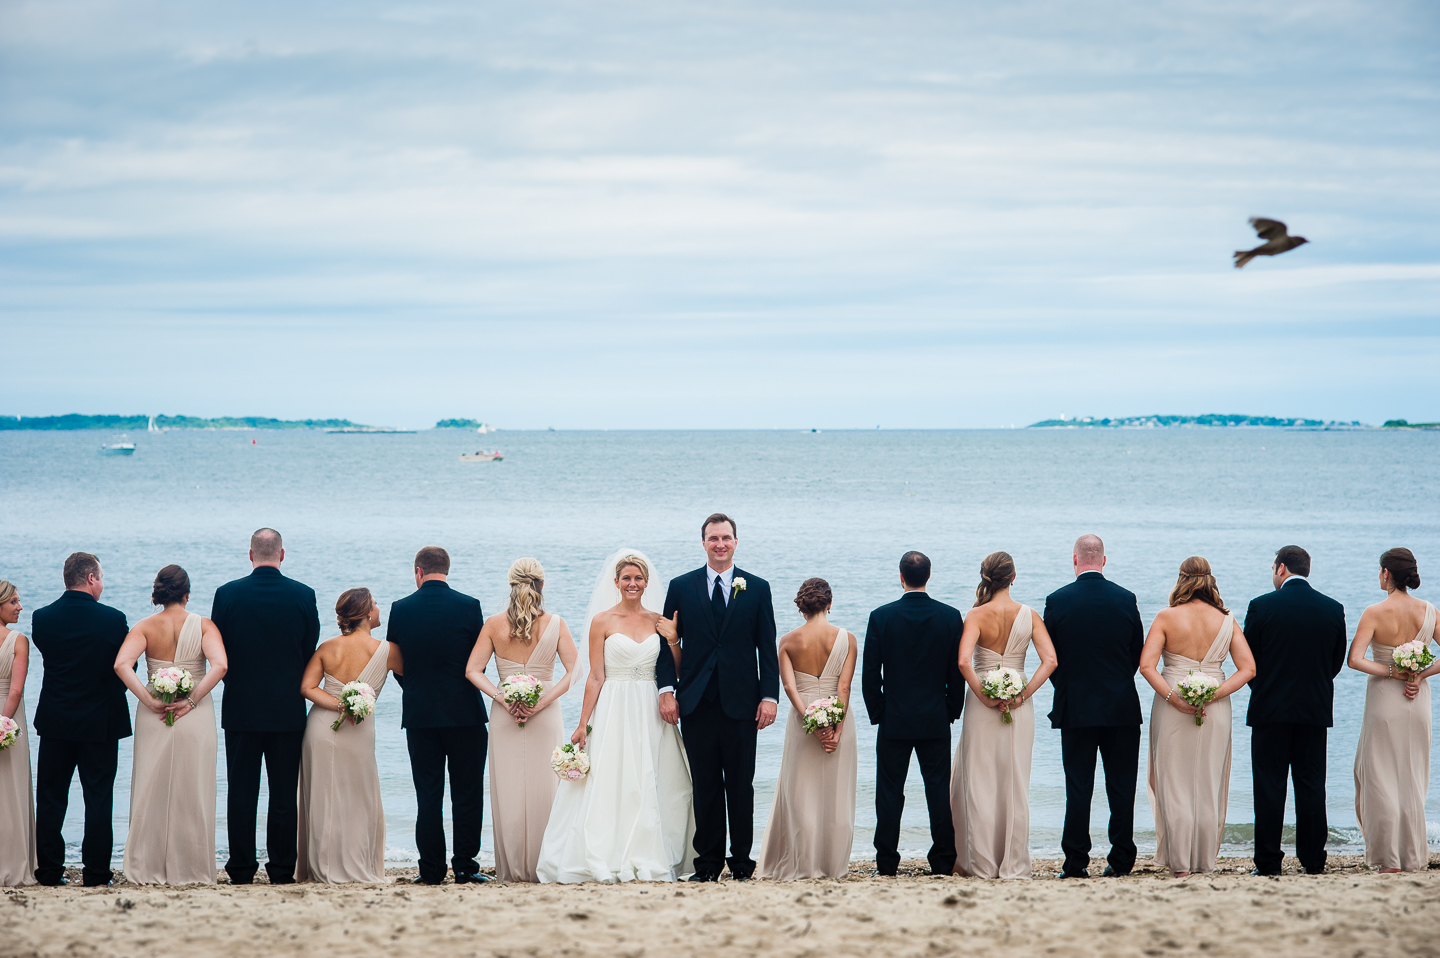 the bride and groom face the camera while the gorgeous wedding party faces the ocean  during this creative wedding party image